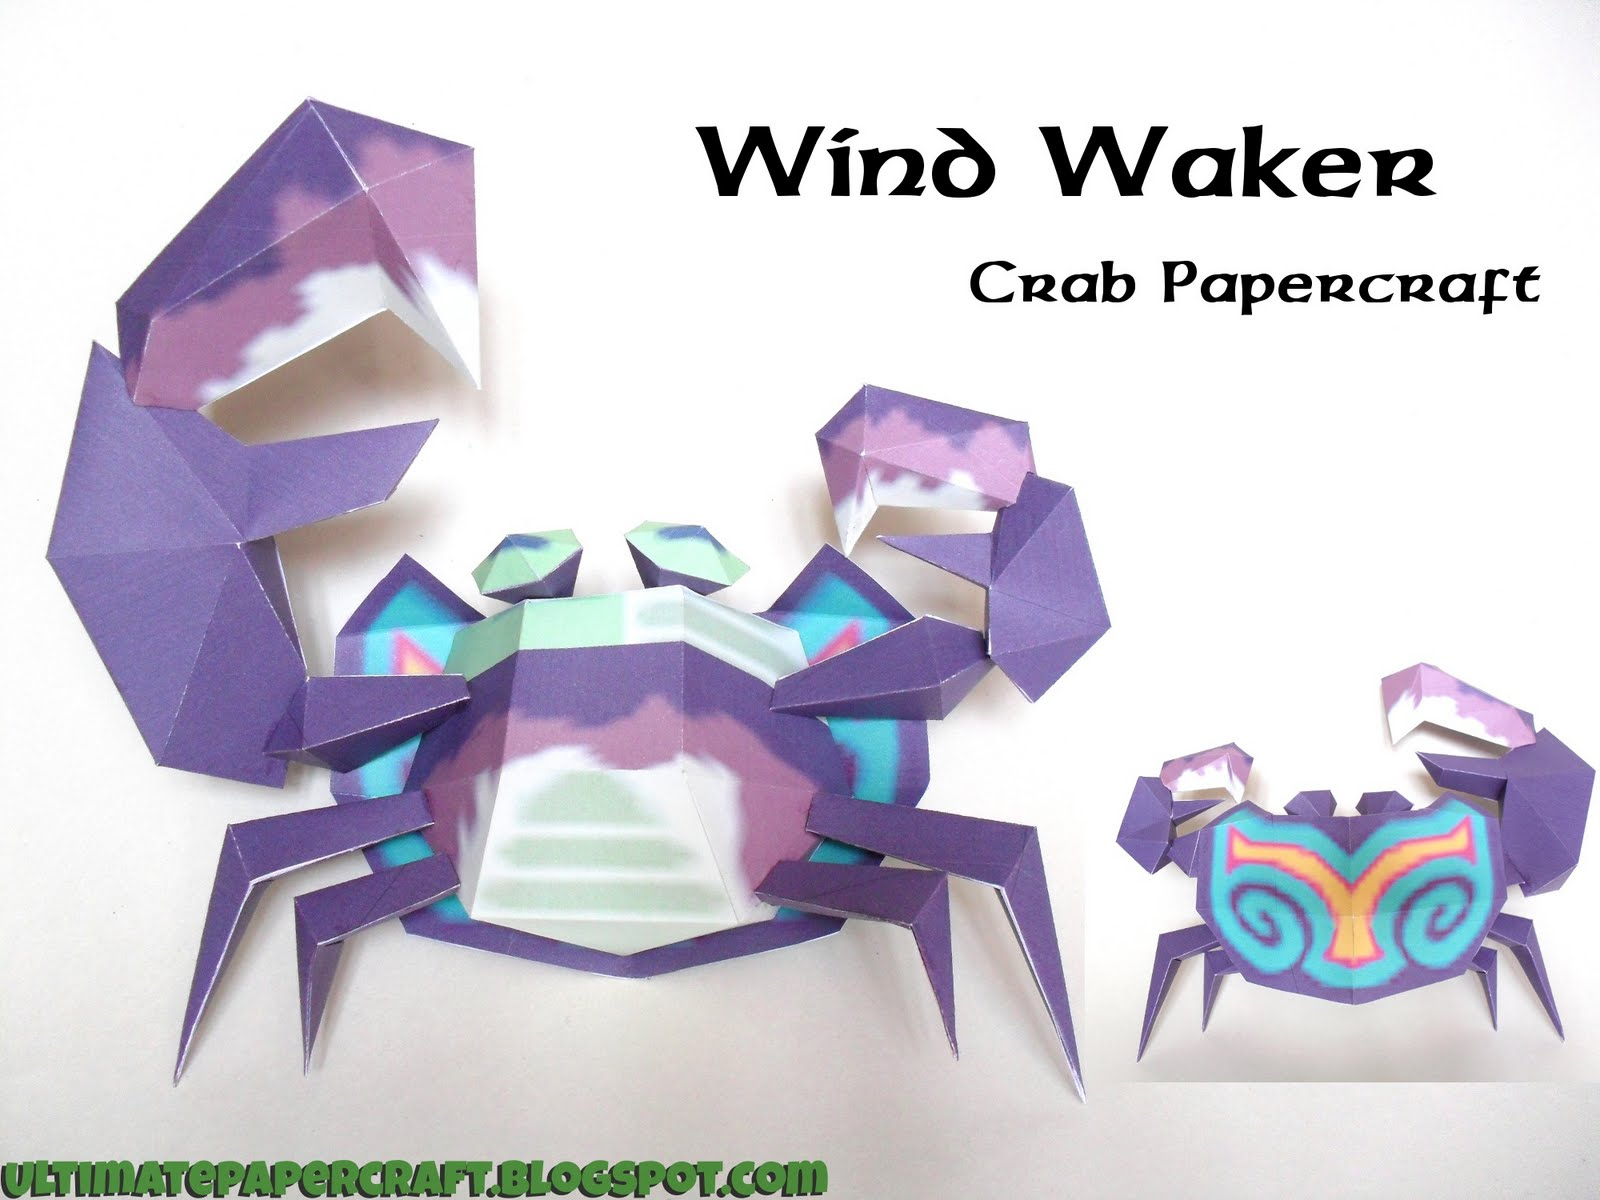 DePapercraftBlog: The Legend of Zelda: The Wind Waker, Crab Papercraft